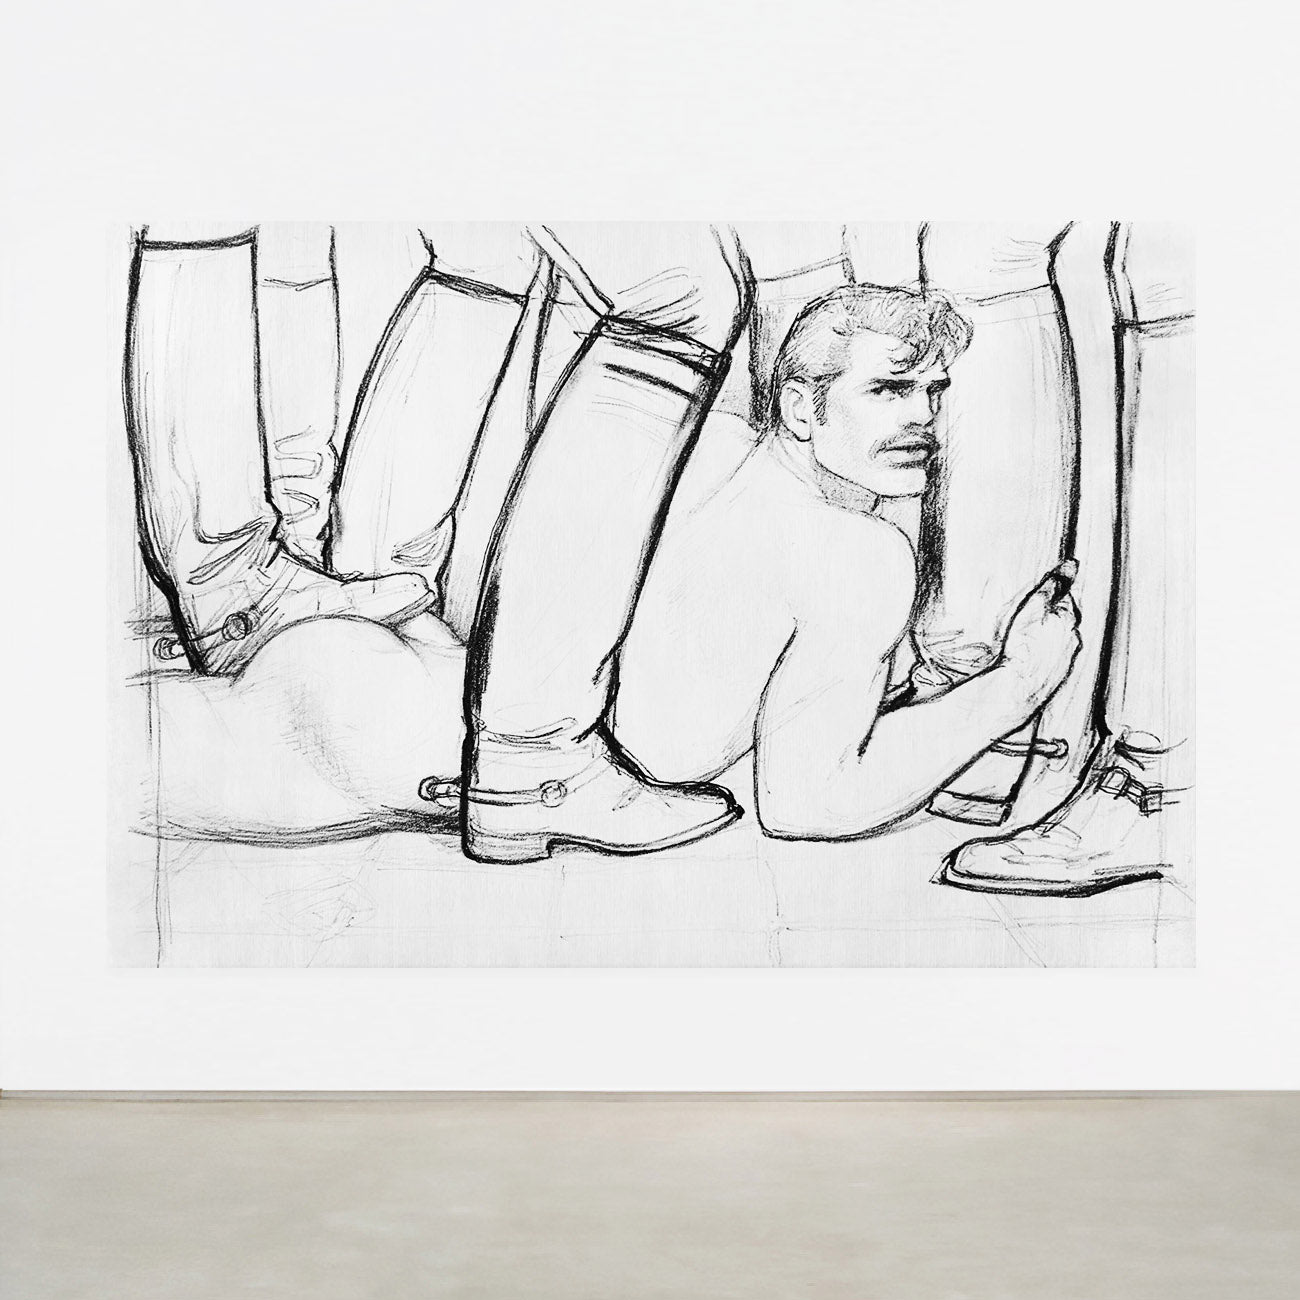 TOM OF FINLAND, UNTITLED, 1982 (0997)